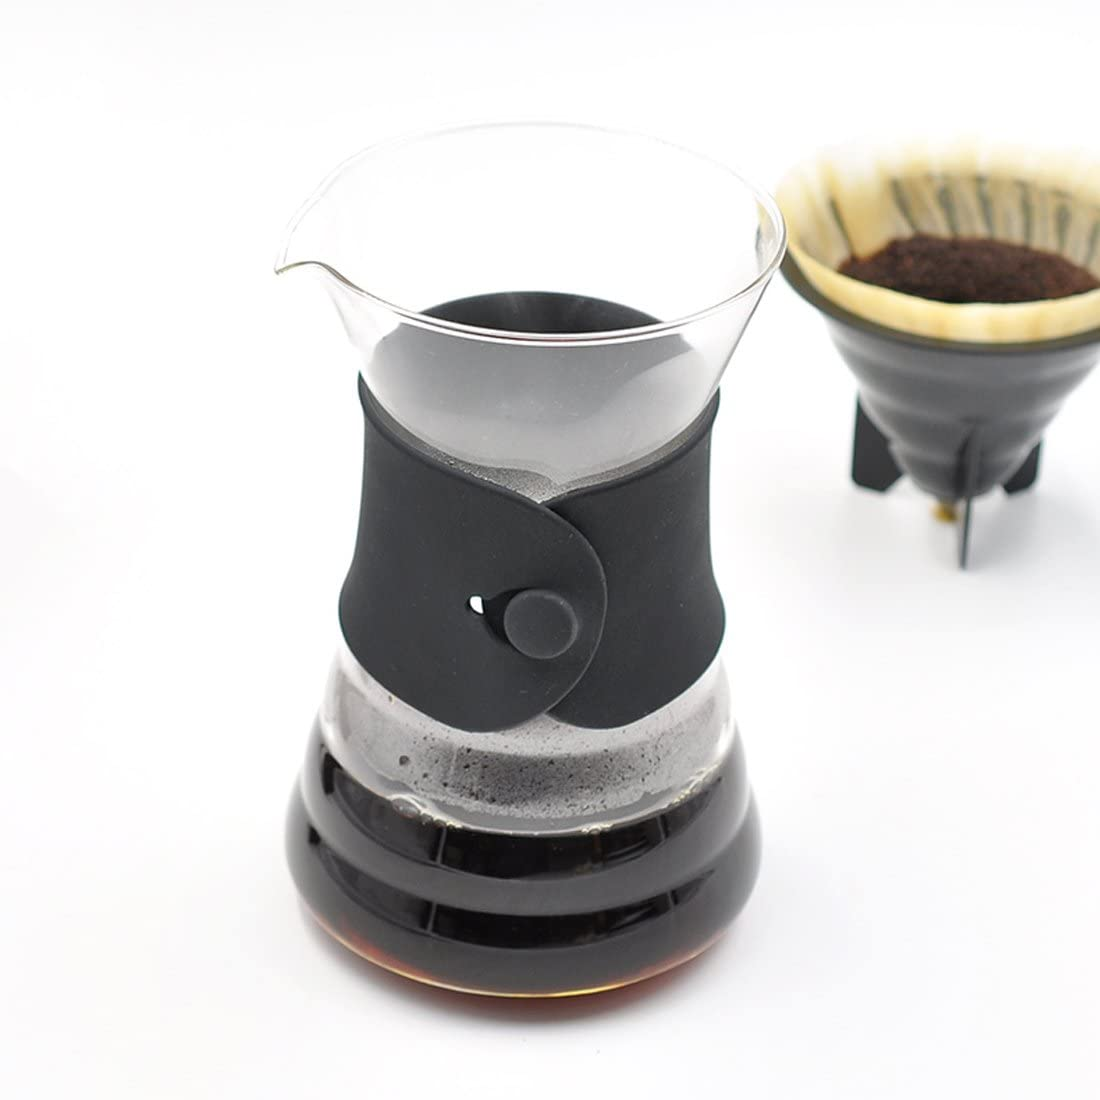 Hario V60 Drip Decanter Coffee Brewer - 700ml - Bean Bros.